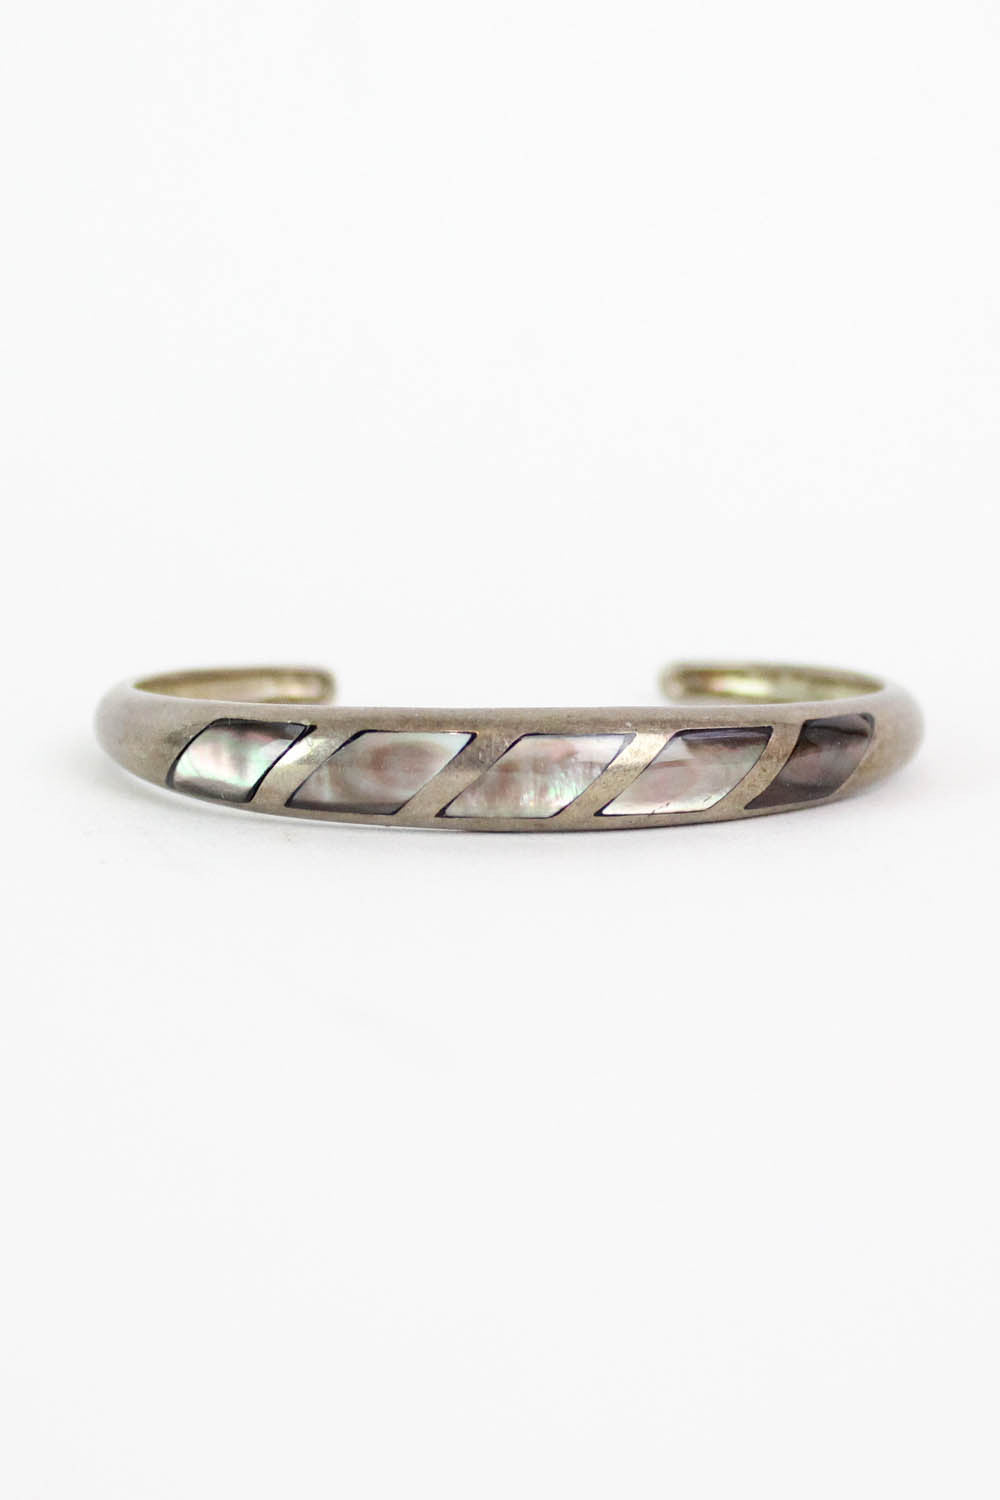 Mother of Pearl 925 Cuff